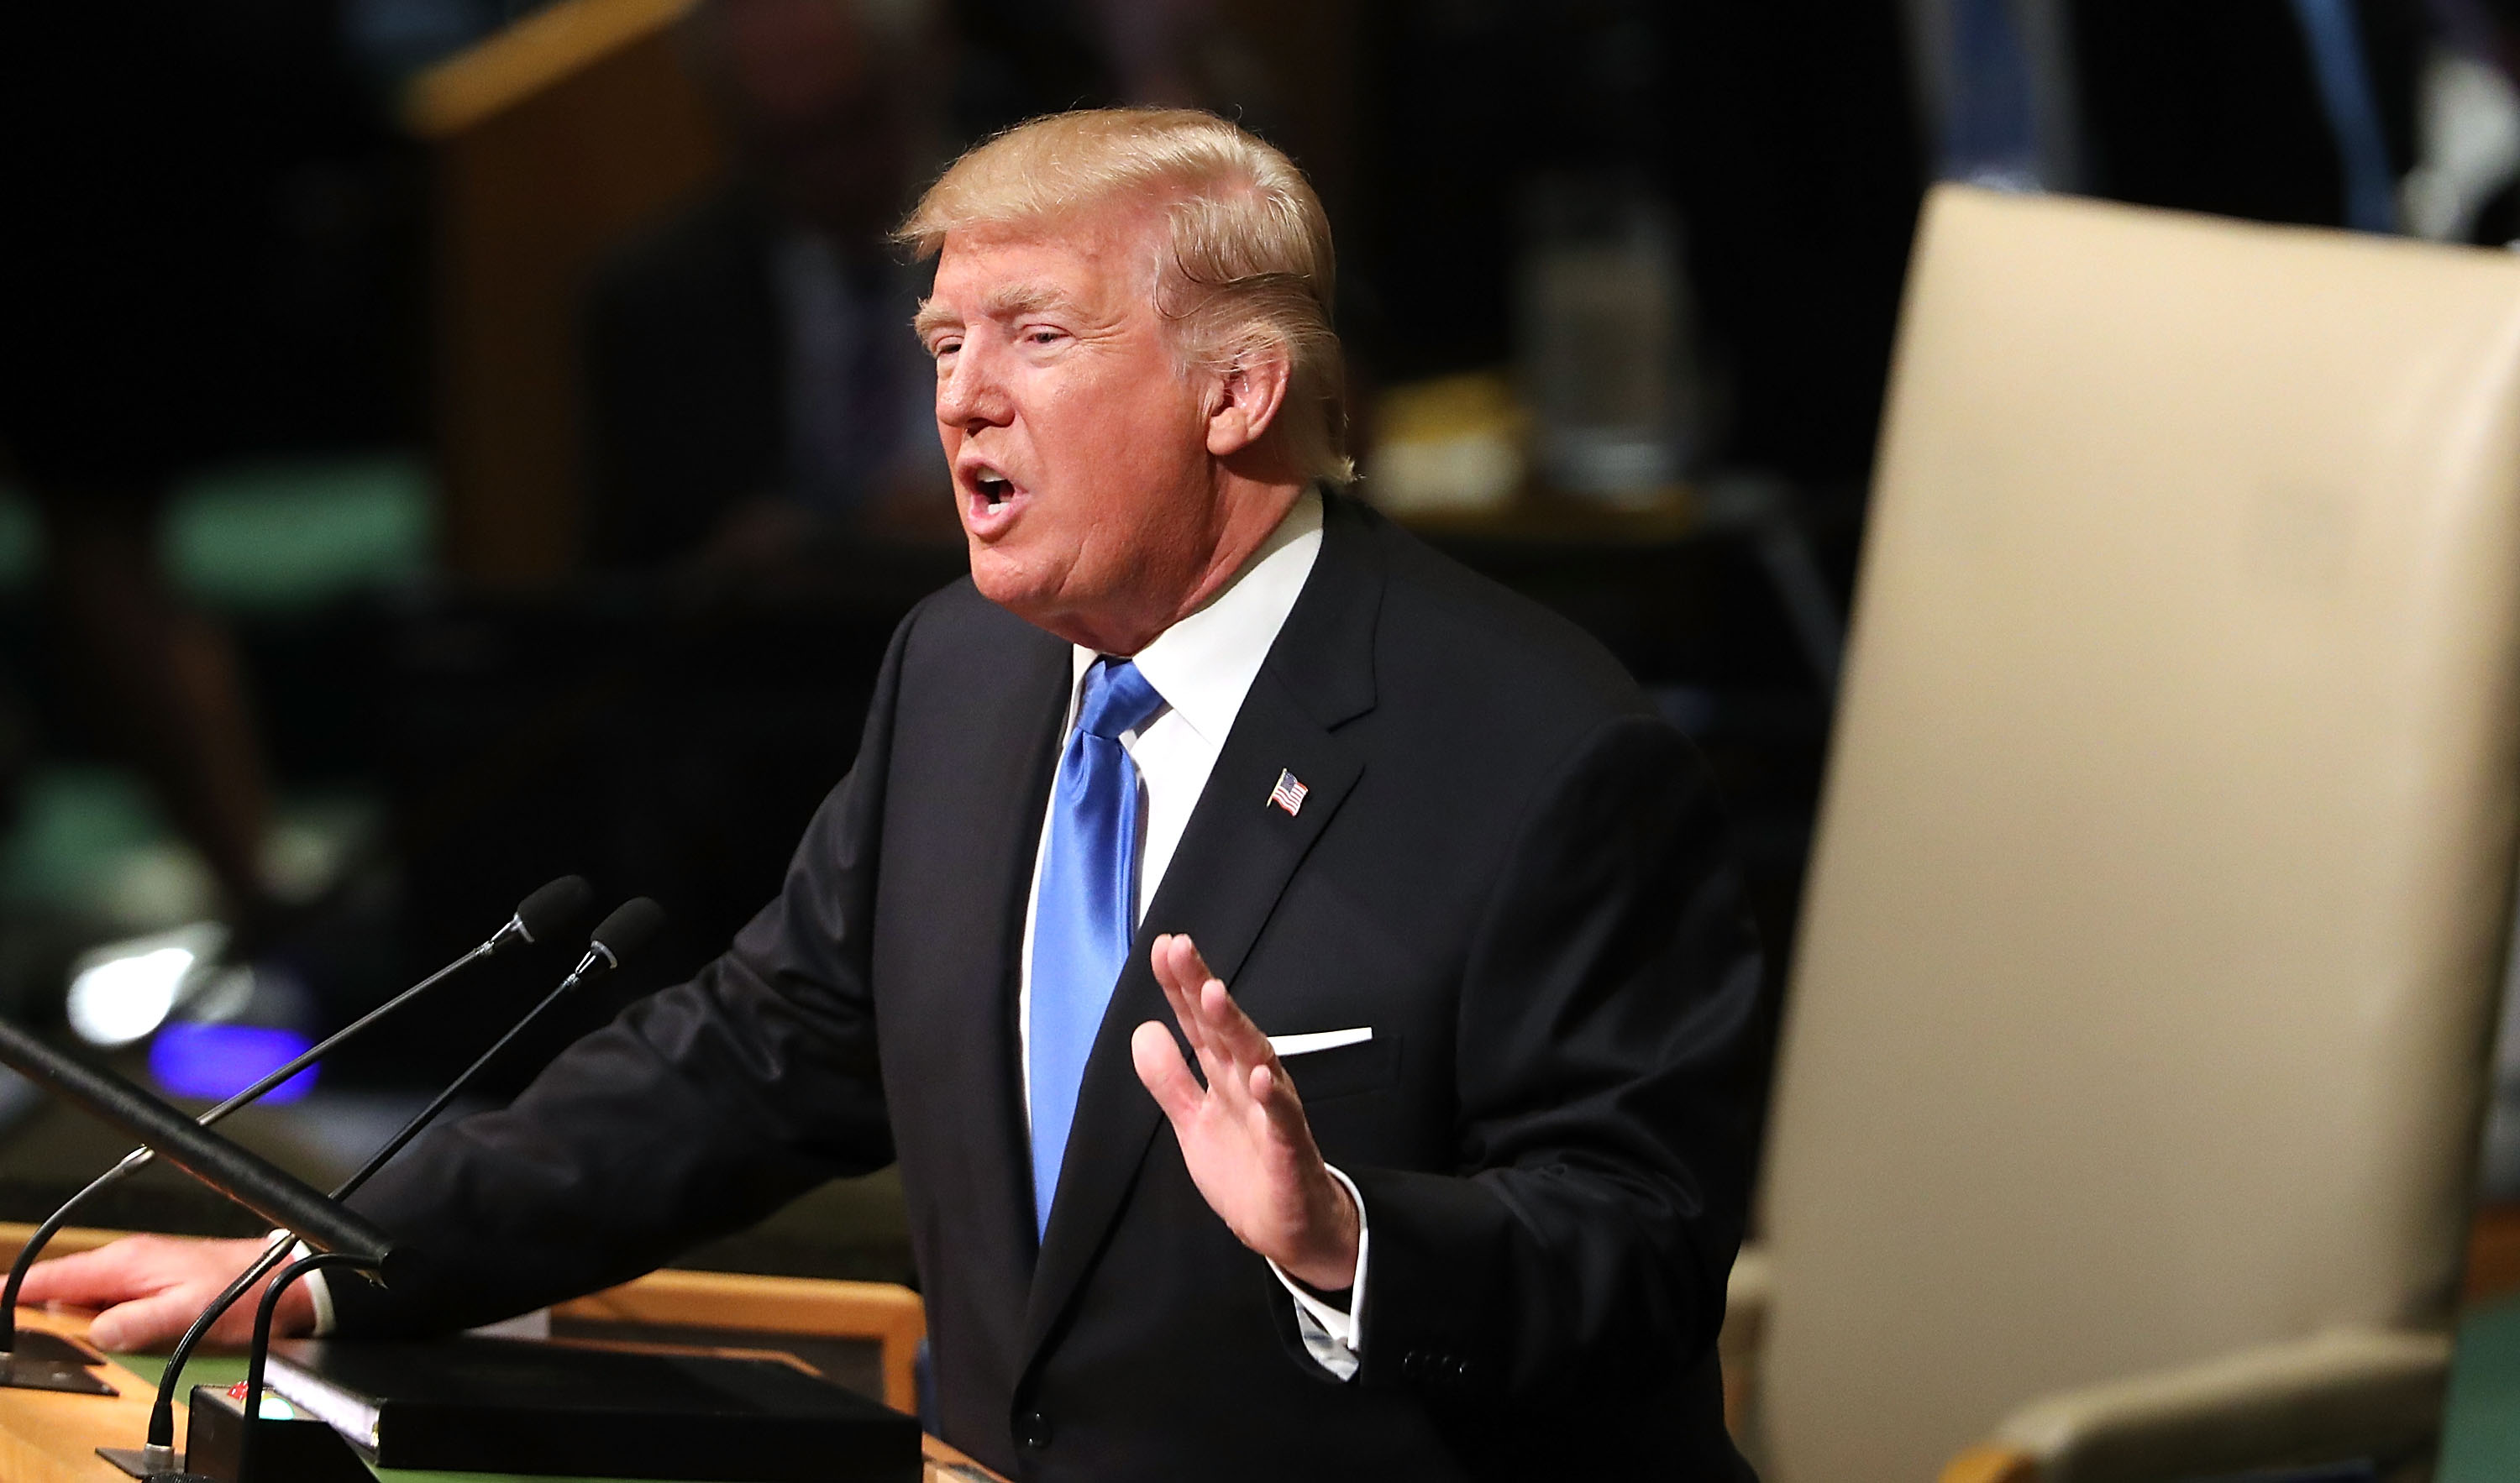 President Donald Trump addresses world leaders at the 72nd United Nations General Assembly in New York on September 19, 2017. (Spencer Platt/Getty Images)